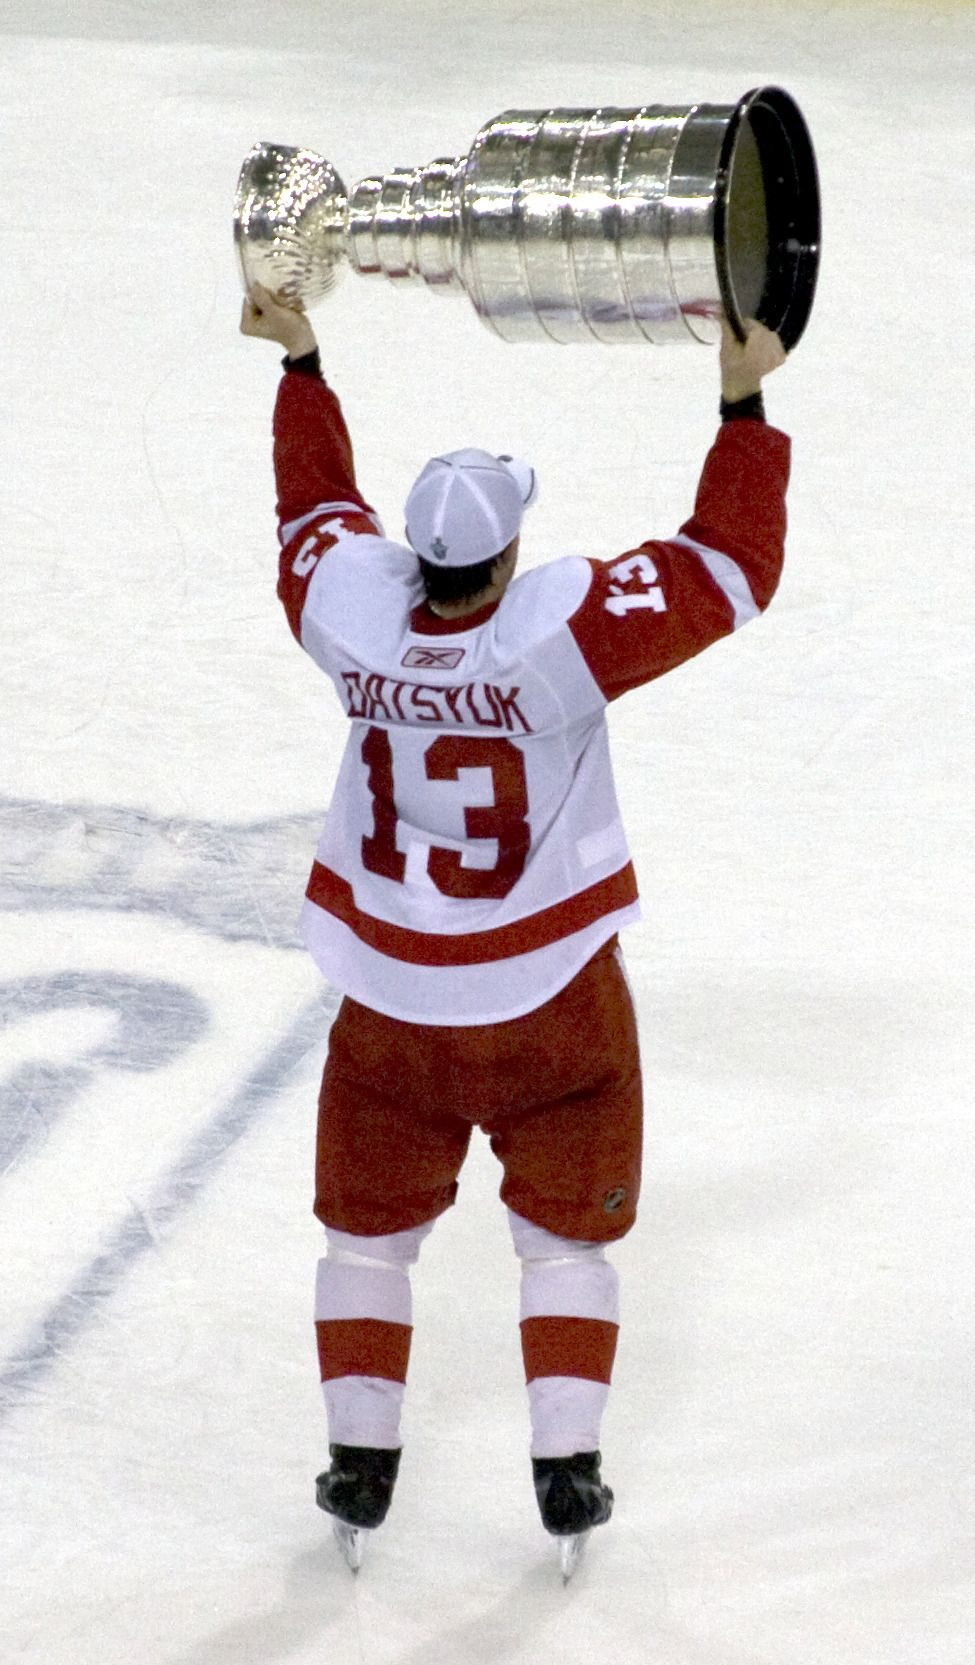 Pavel Datsyuk holding the Stanley Cup in 2008 Red wings